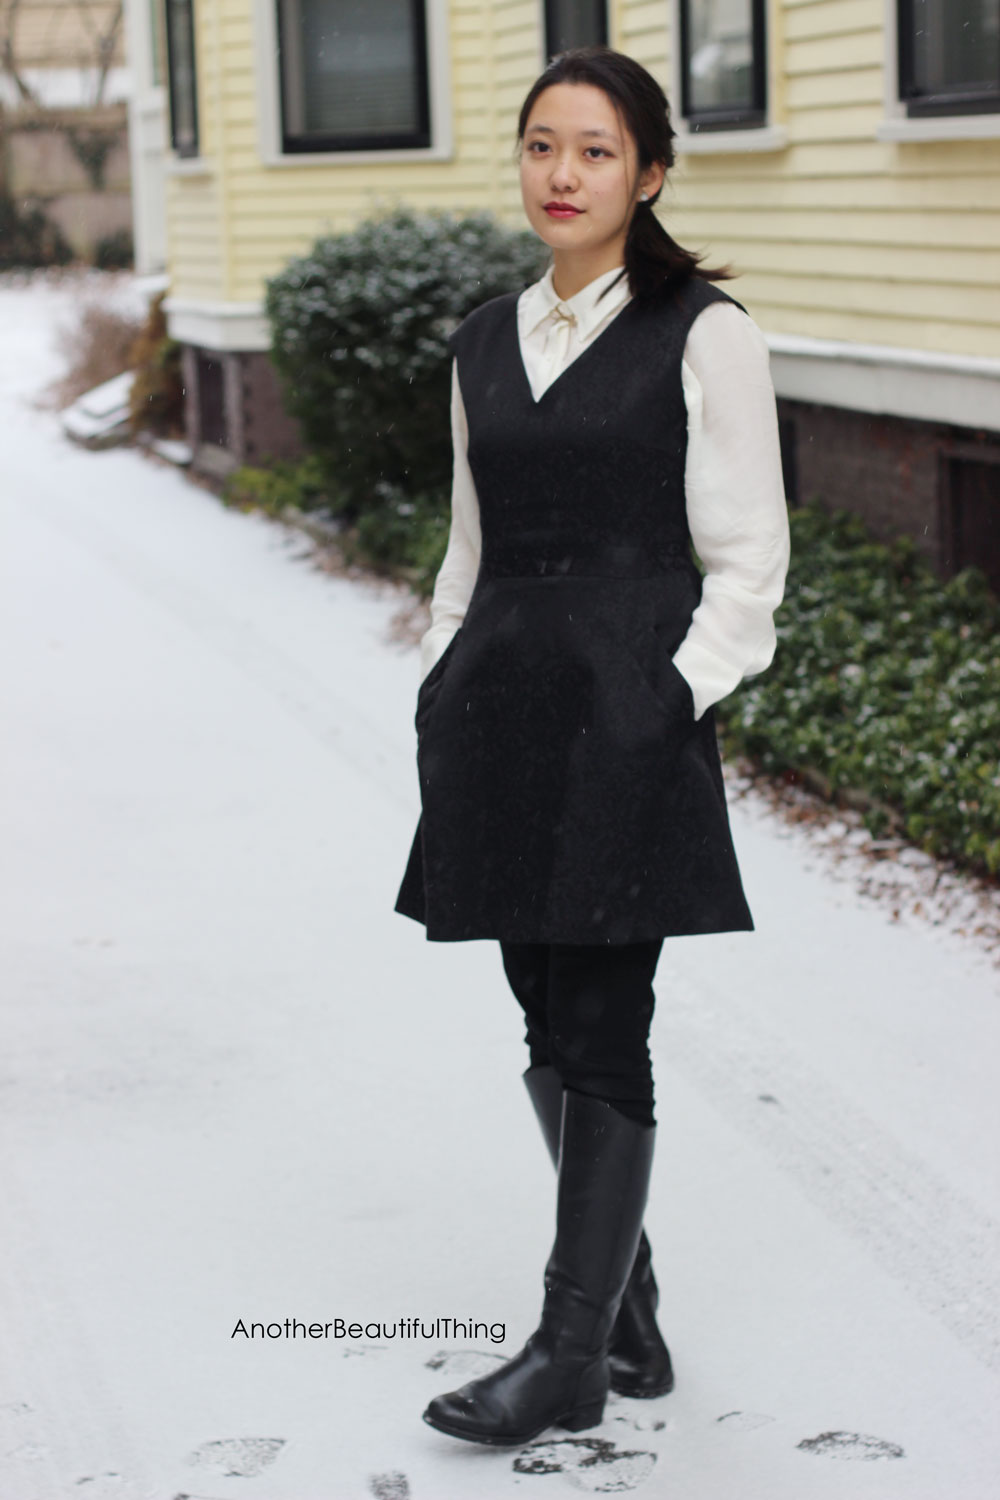 Winter outfit idea - layering dresses over button down shirts